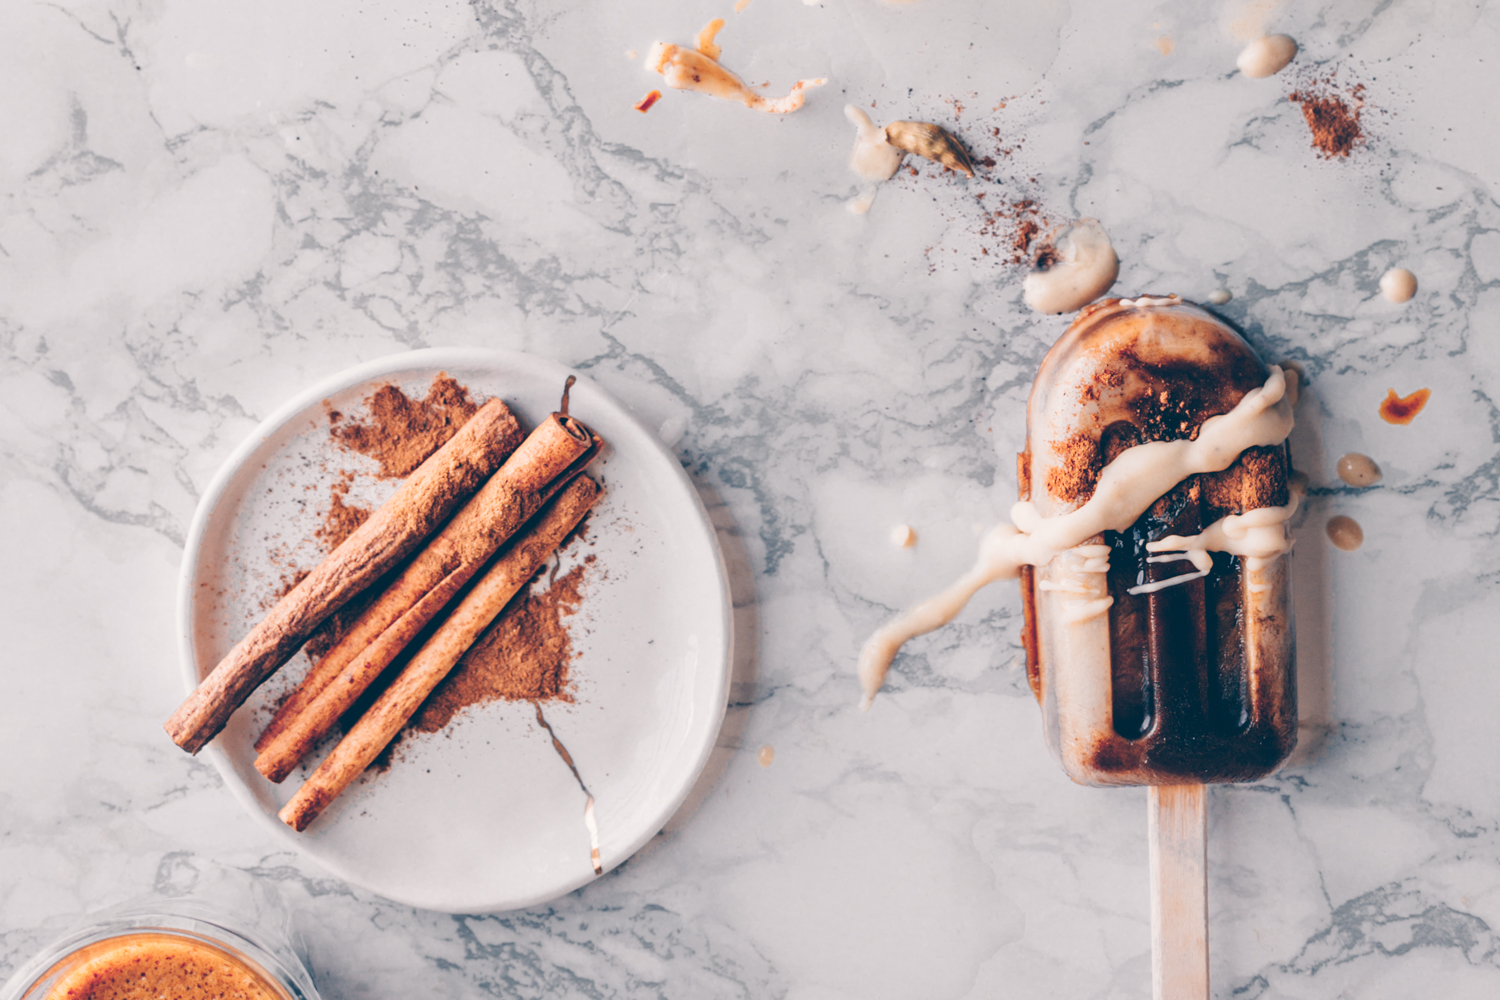 Spiced Turkish Coffee Popsicles - A Vegan Recipe by Kati of black.white.vivid. - Vegan Ice Cream popsicles with Oriental Coffee and Cashew Cream, spiced with cardamom and cinnamon - food photography, moody food photography, food styling, vegan popsicle recipe, coffee popsicle recipe